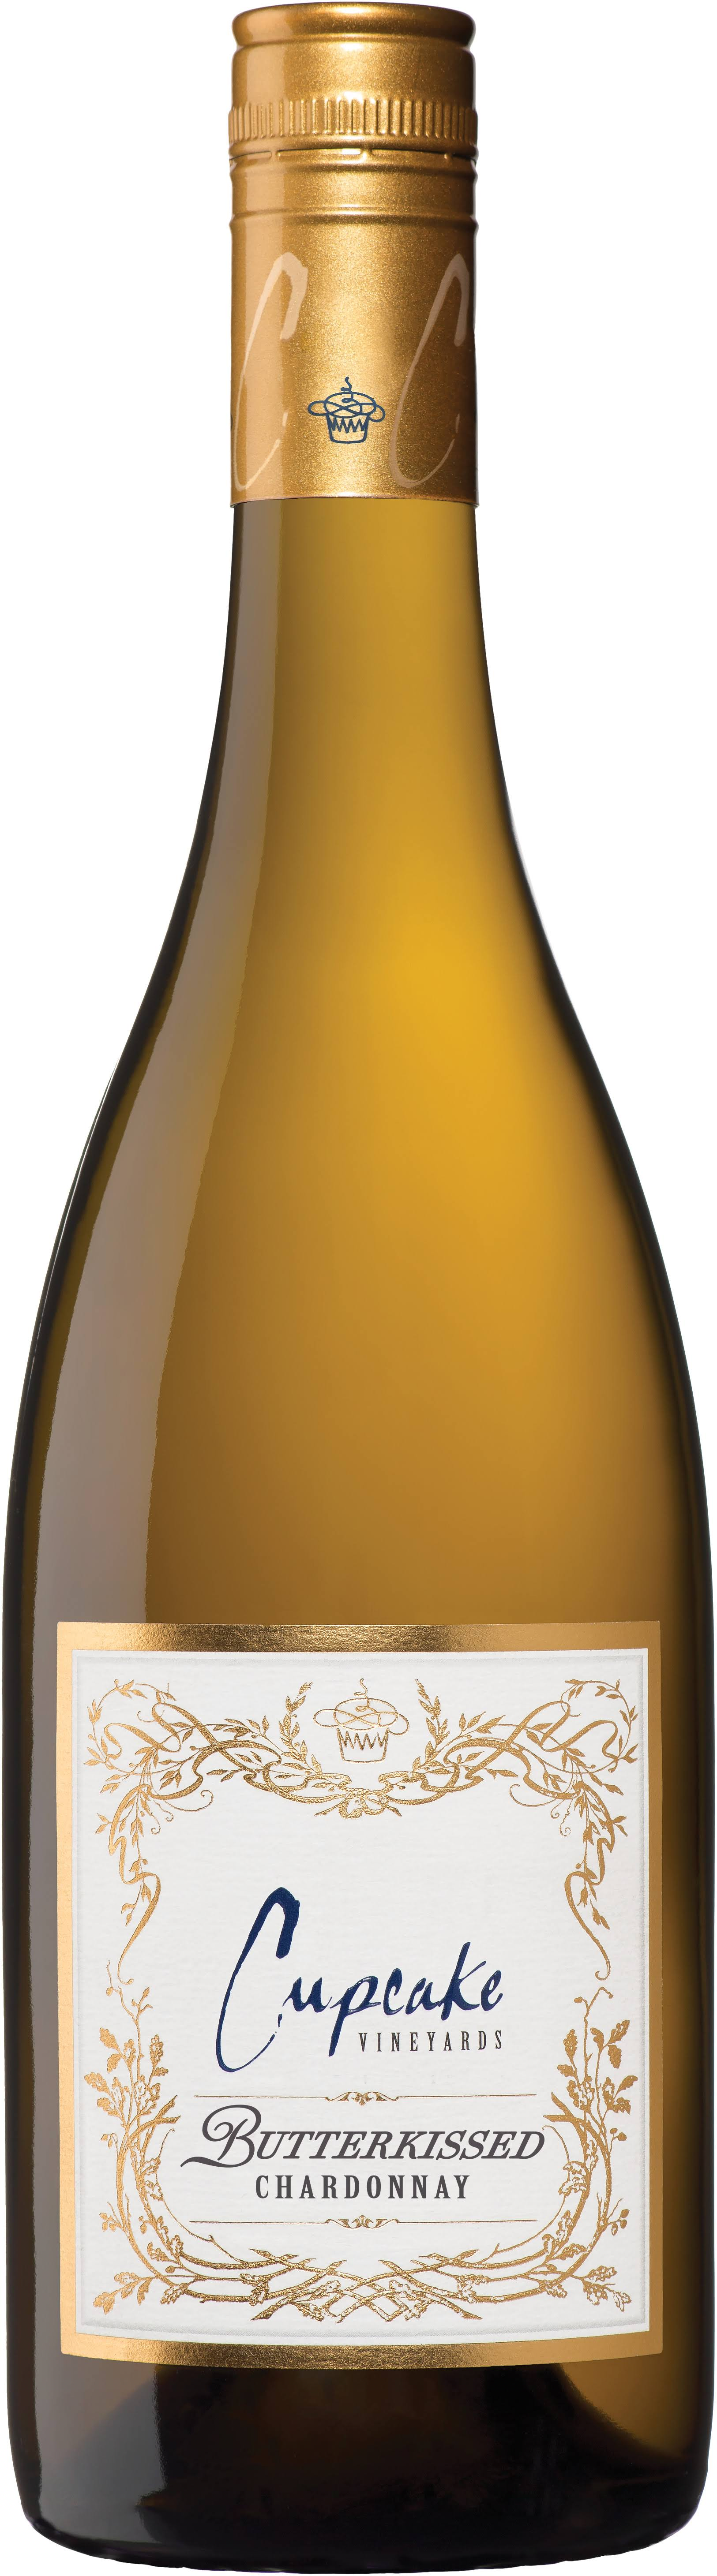 Cupcake Chardonnay, Butterkissed, California, 2016 - 750 ml